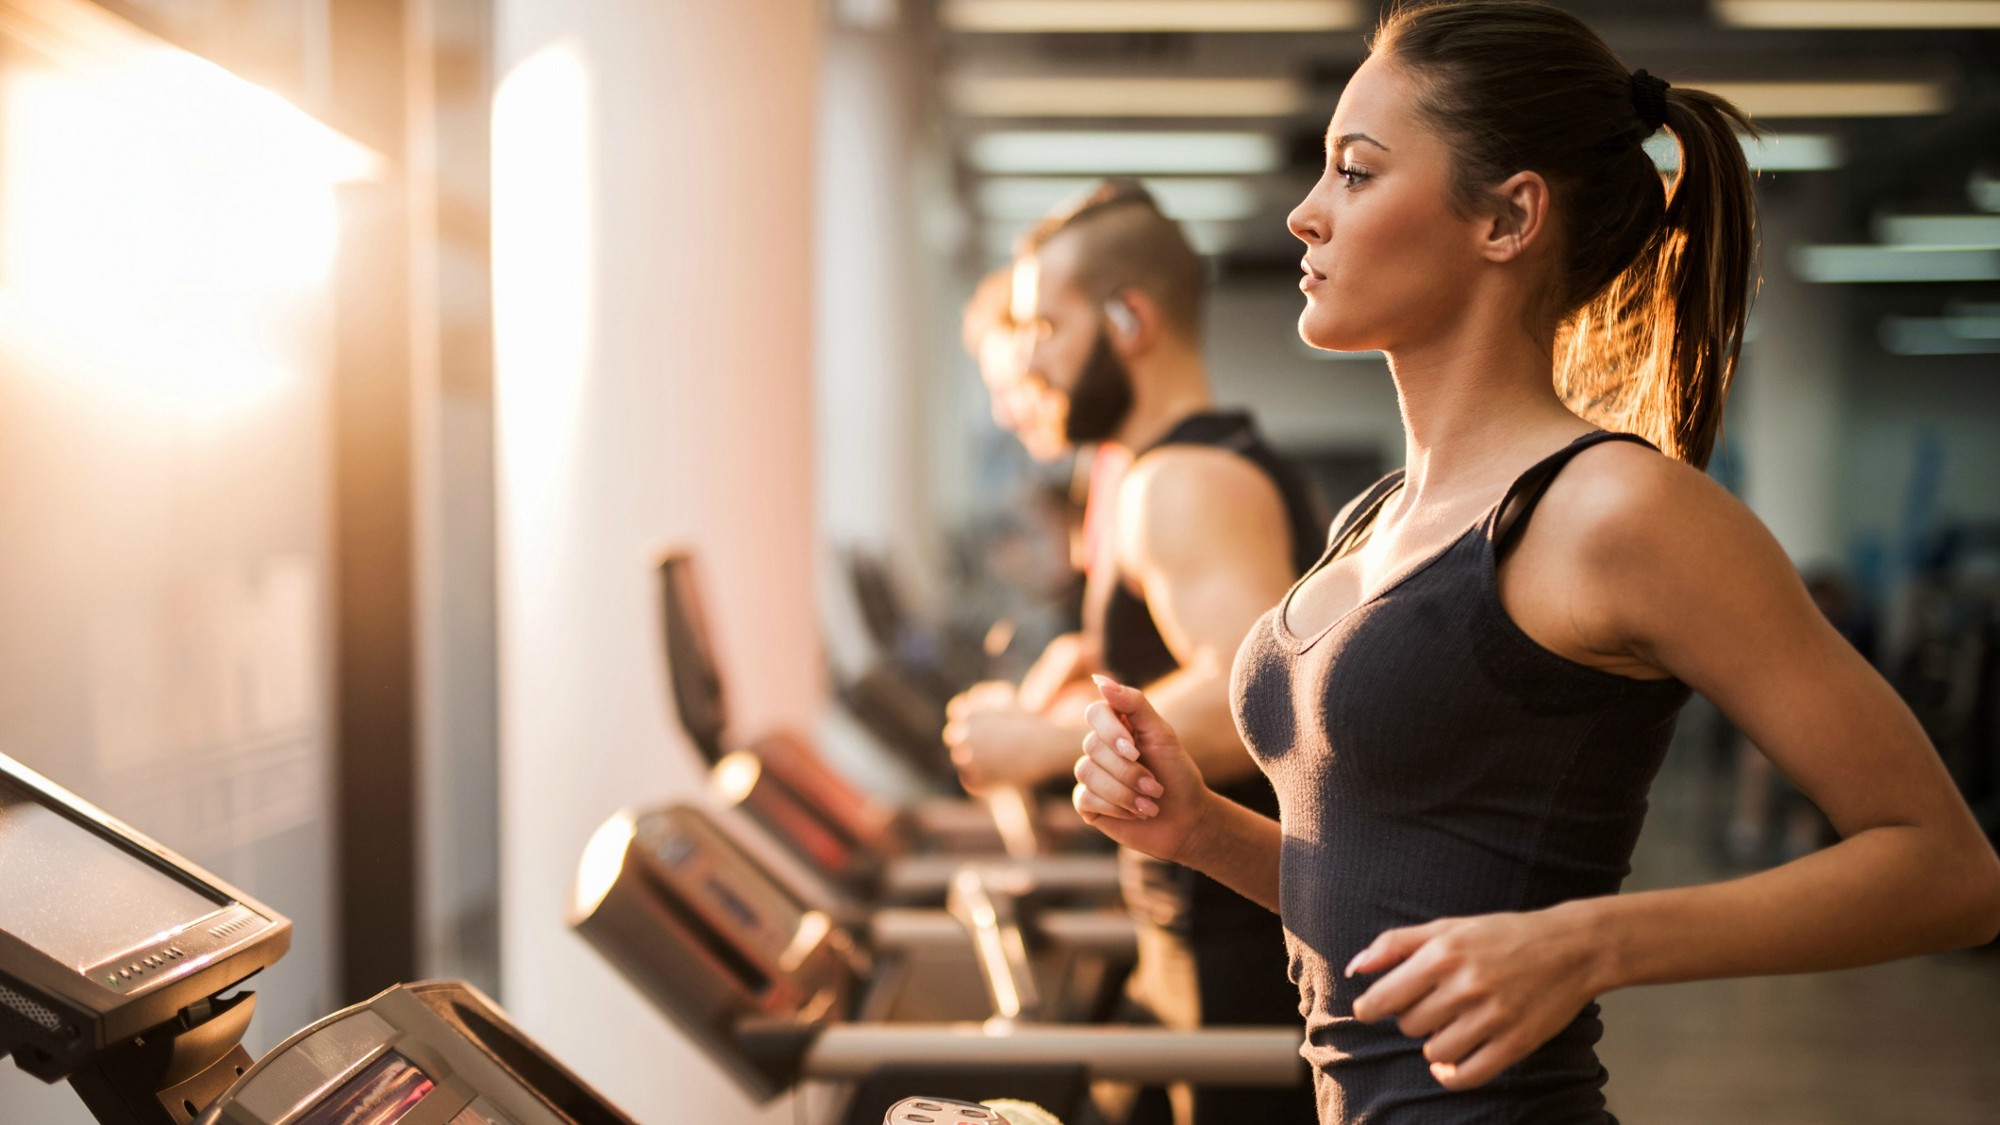 Exercises to lose 10 pounds weight in one month